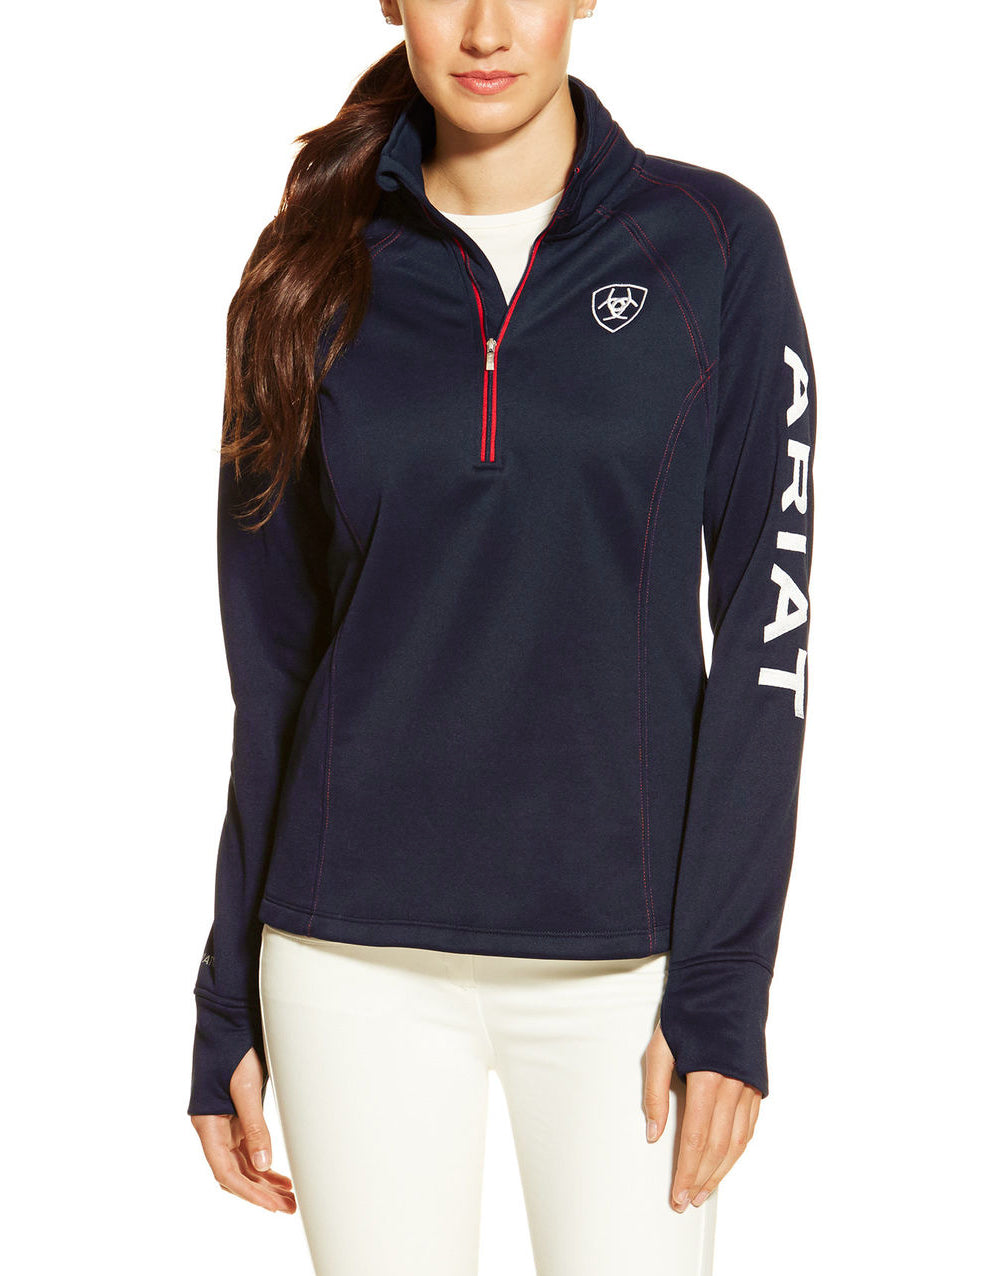 Ariat Women's Tek Team 1/4 Zip Top - North Shore Saddlery